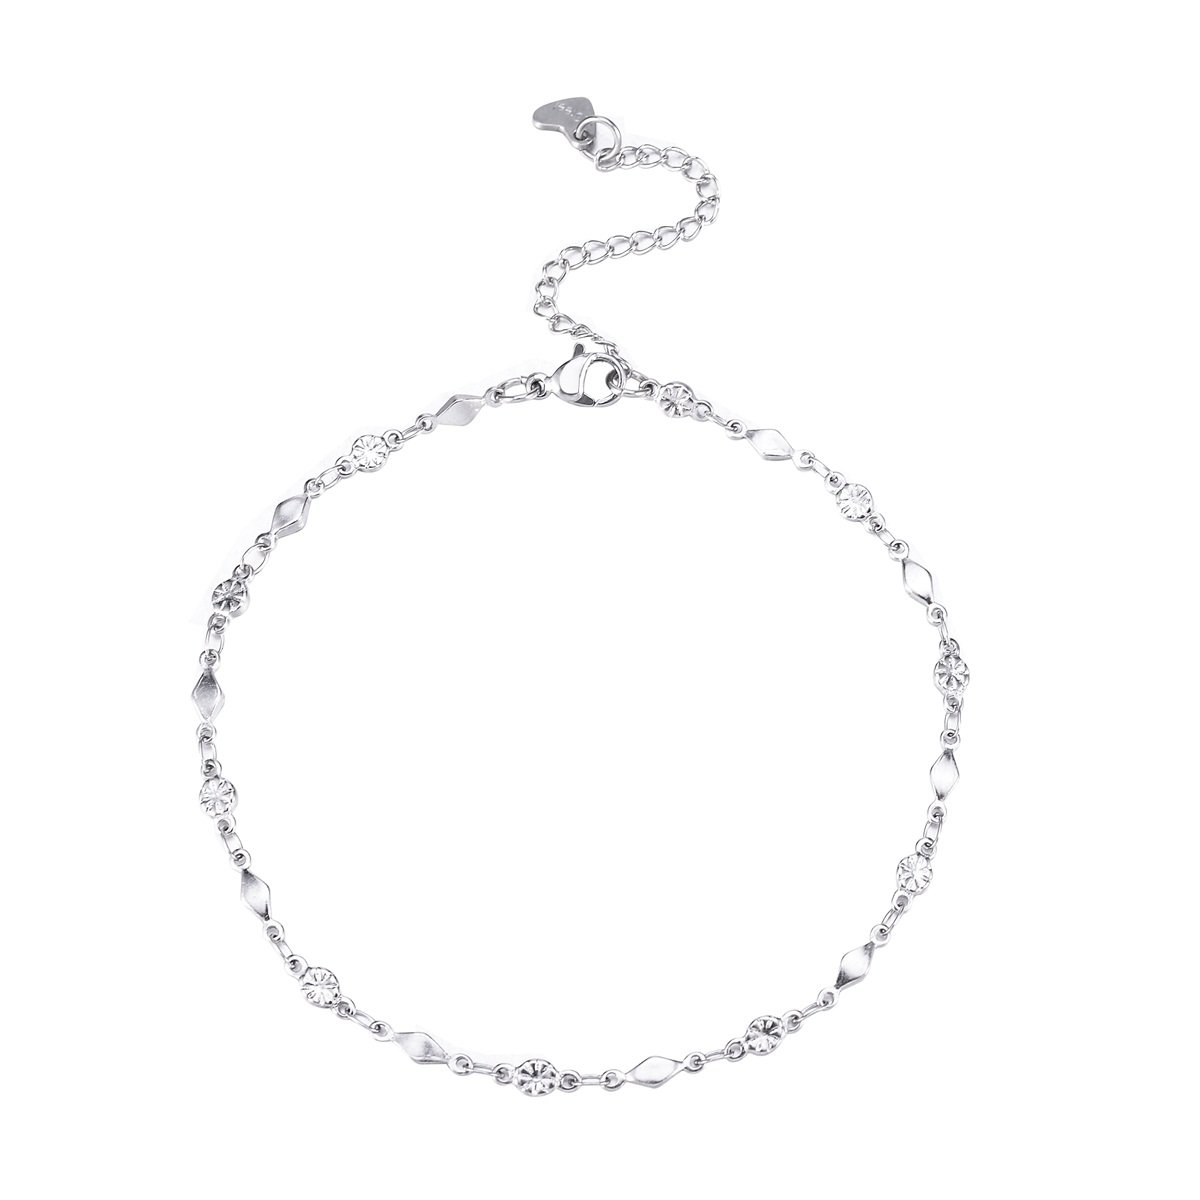 Valyria Silver Tone Stainless Steel Lobster Clasp Anklet 8'+2' for Women VALYRIA0602B106659